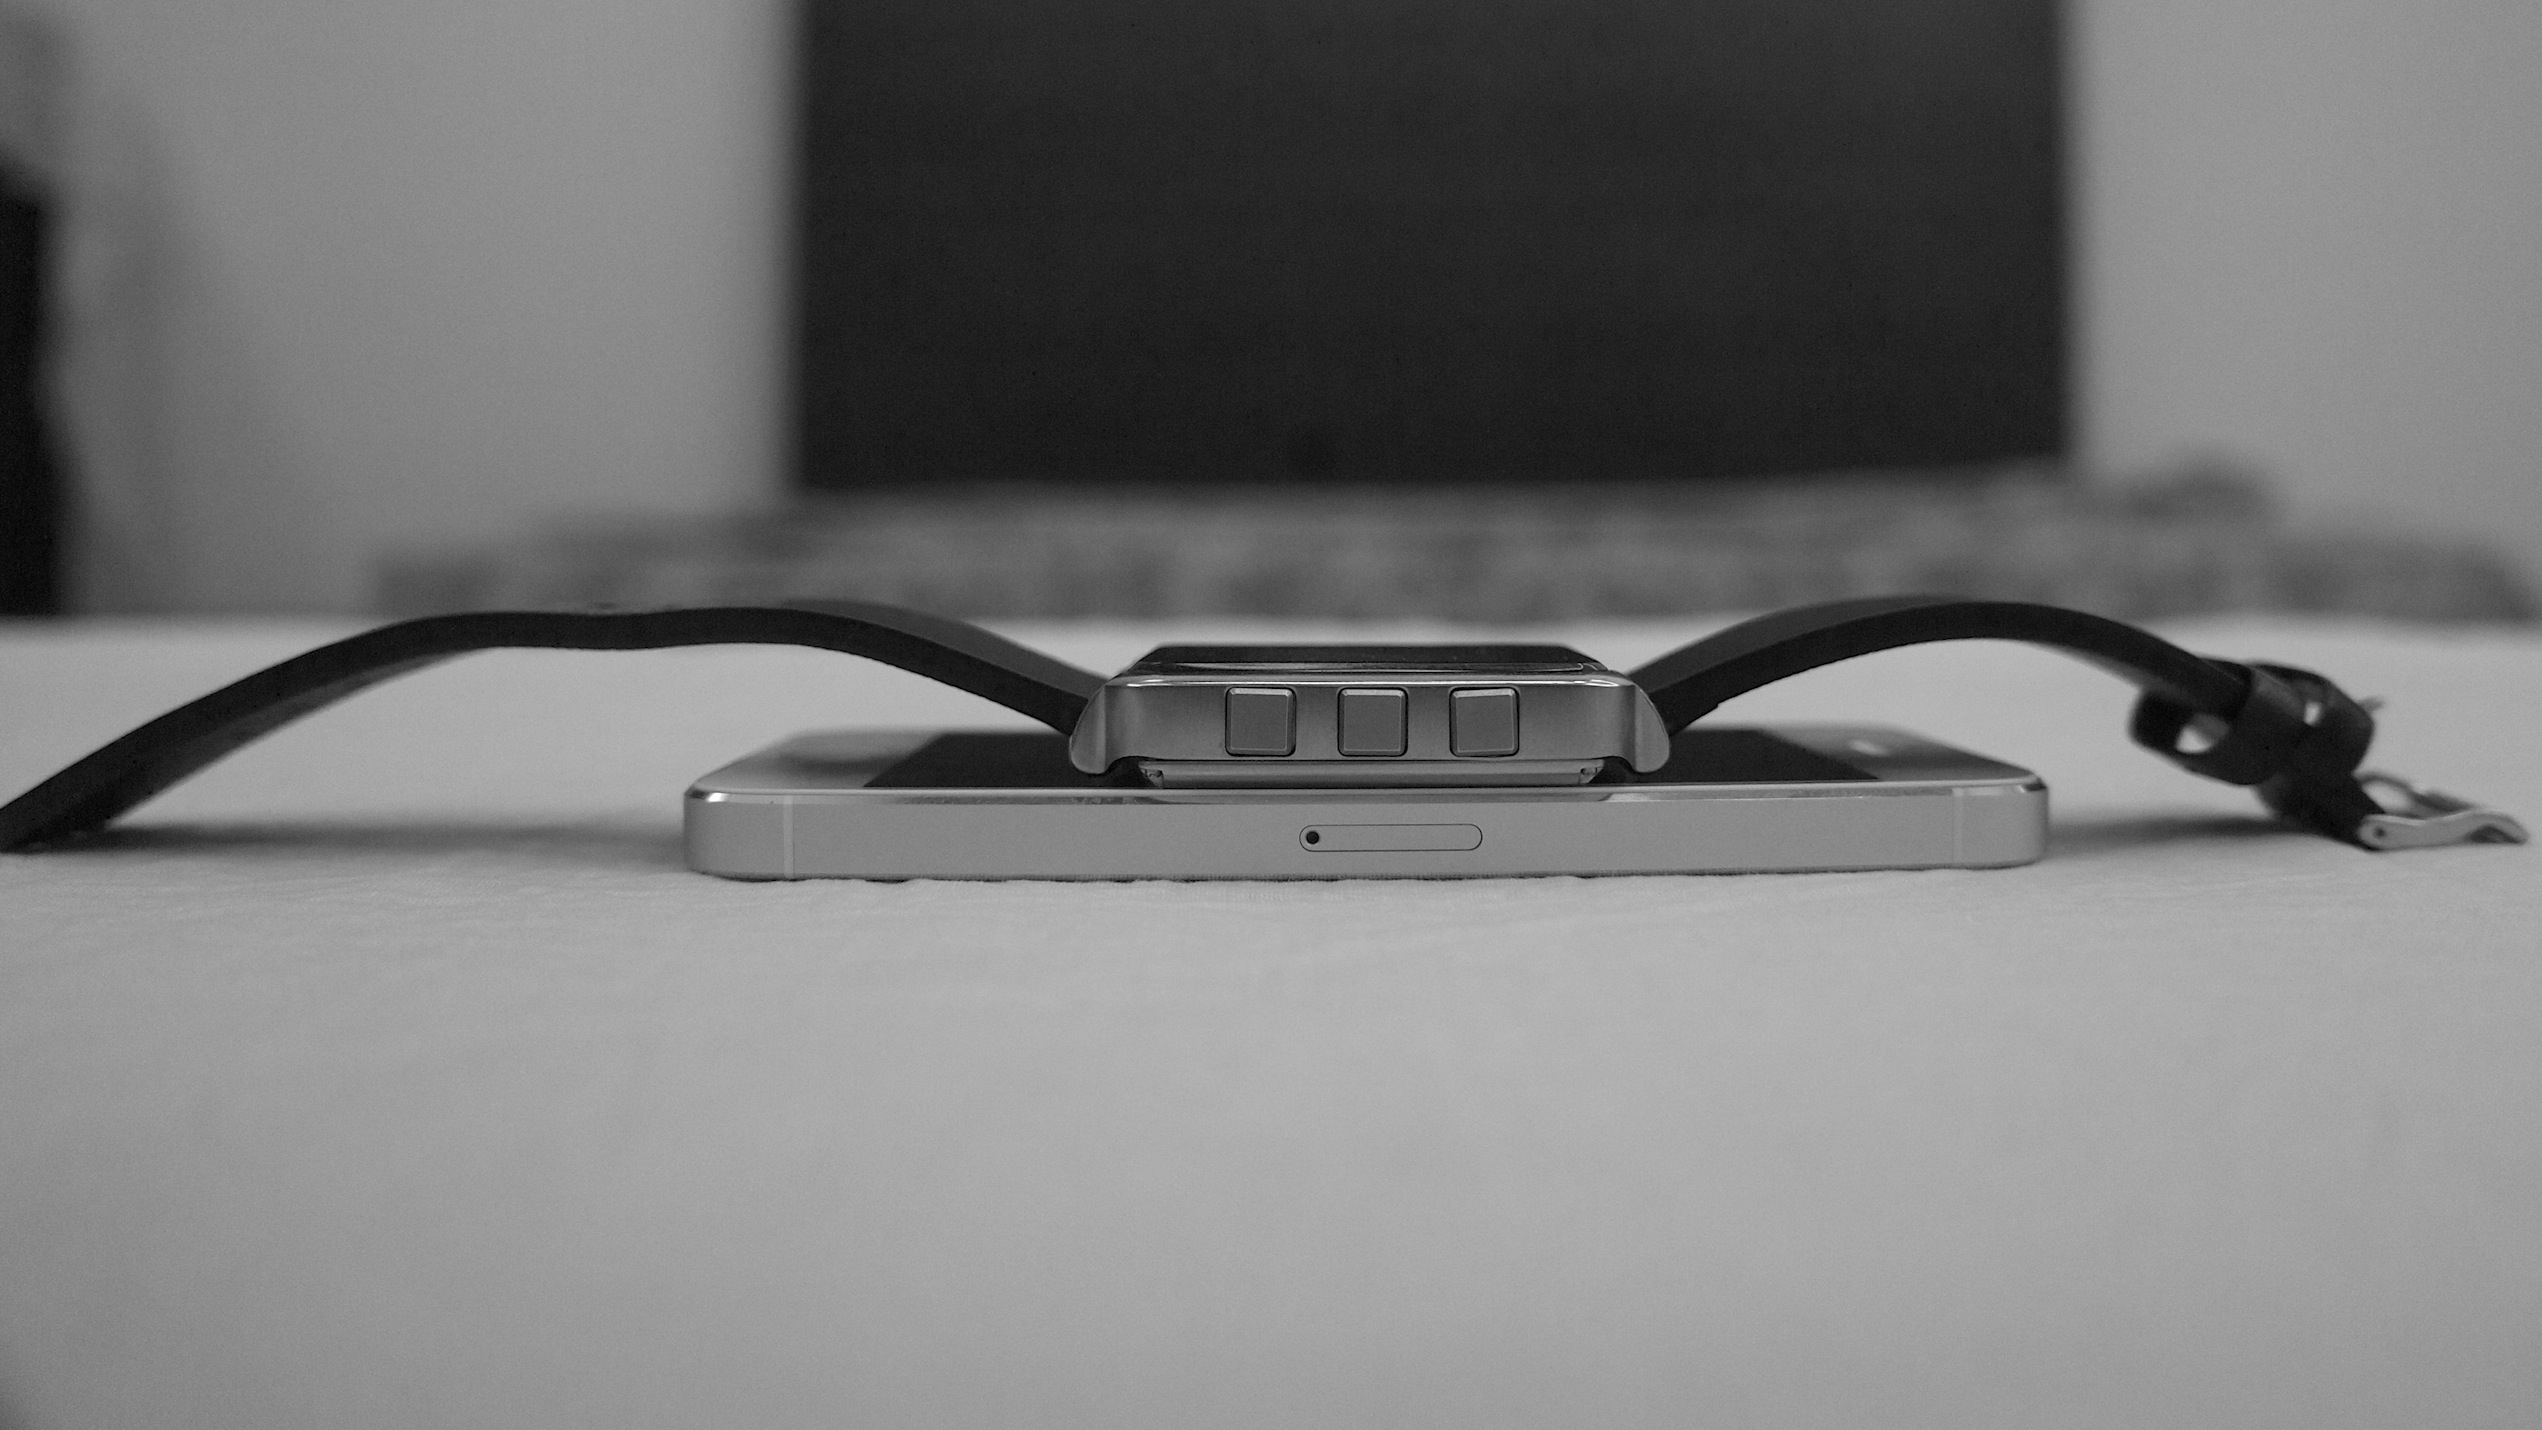 MetaWatch compared to iPhone 5 - Thickness